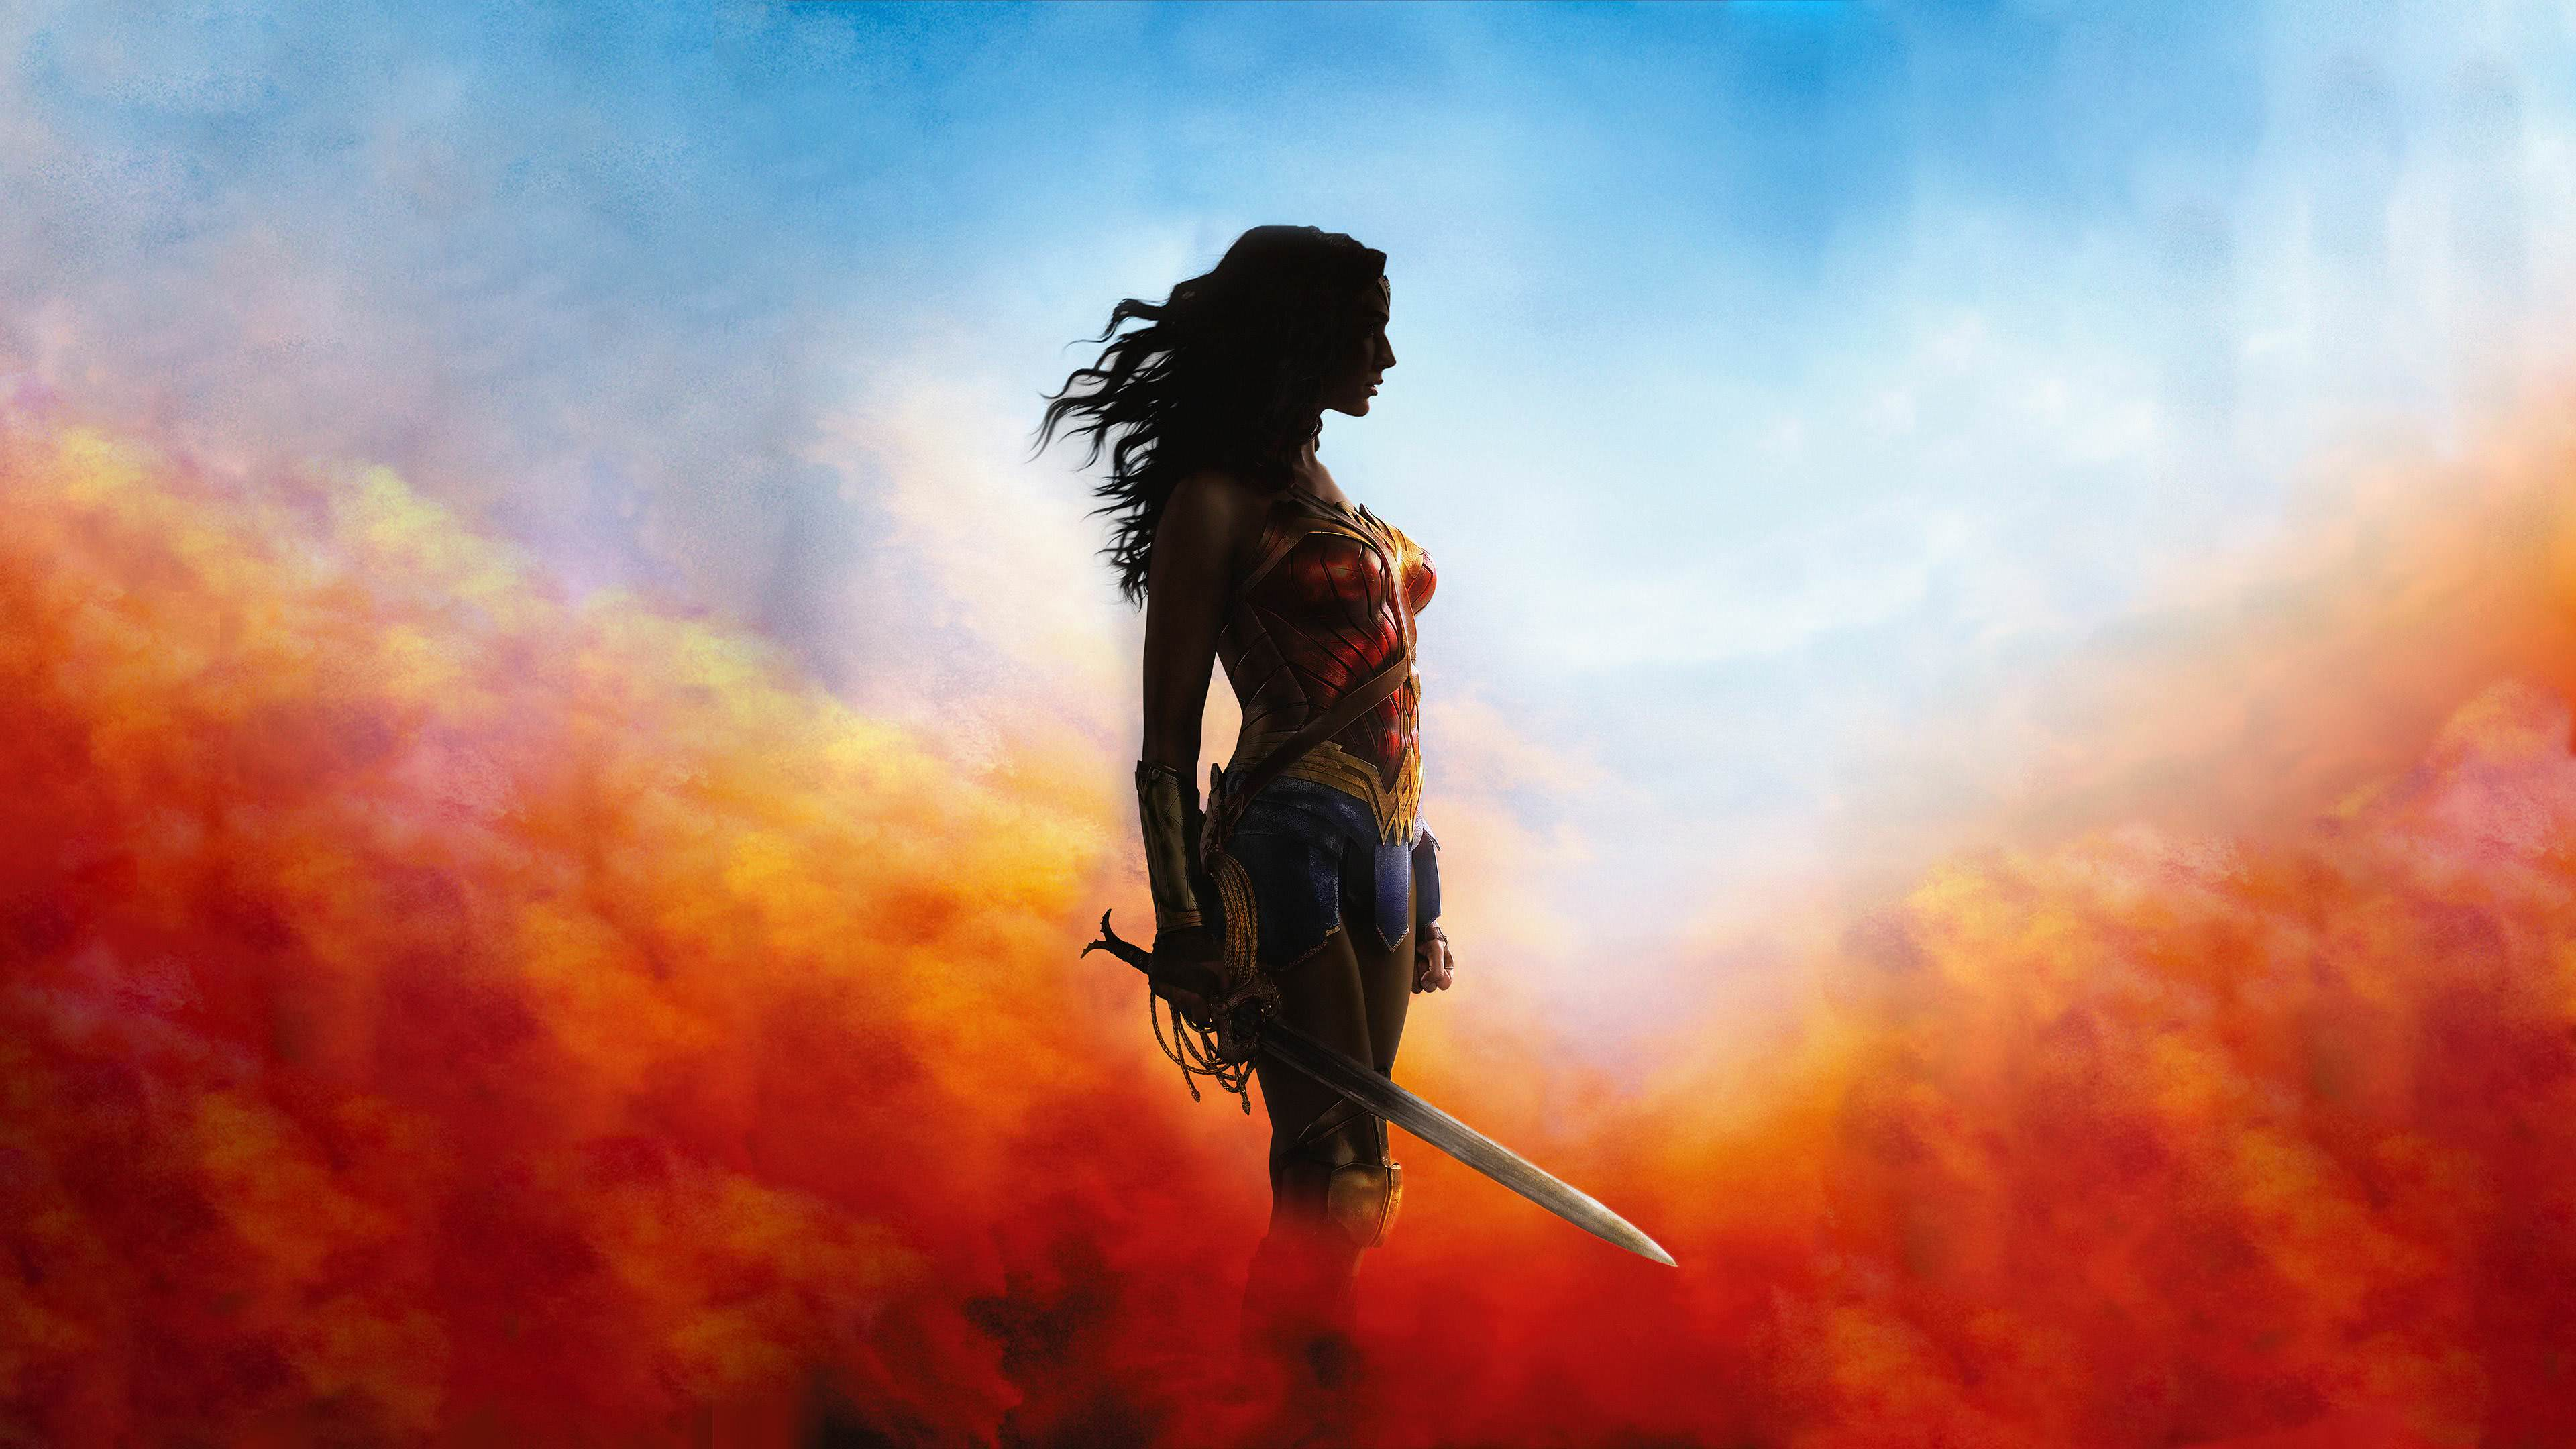 Wallpaper Wonder Woman 2017 Movies 6723: Wonder Woman Movie UHD 4K Wallpaper